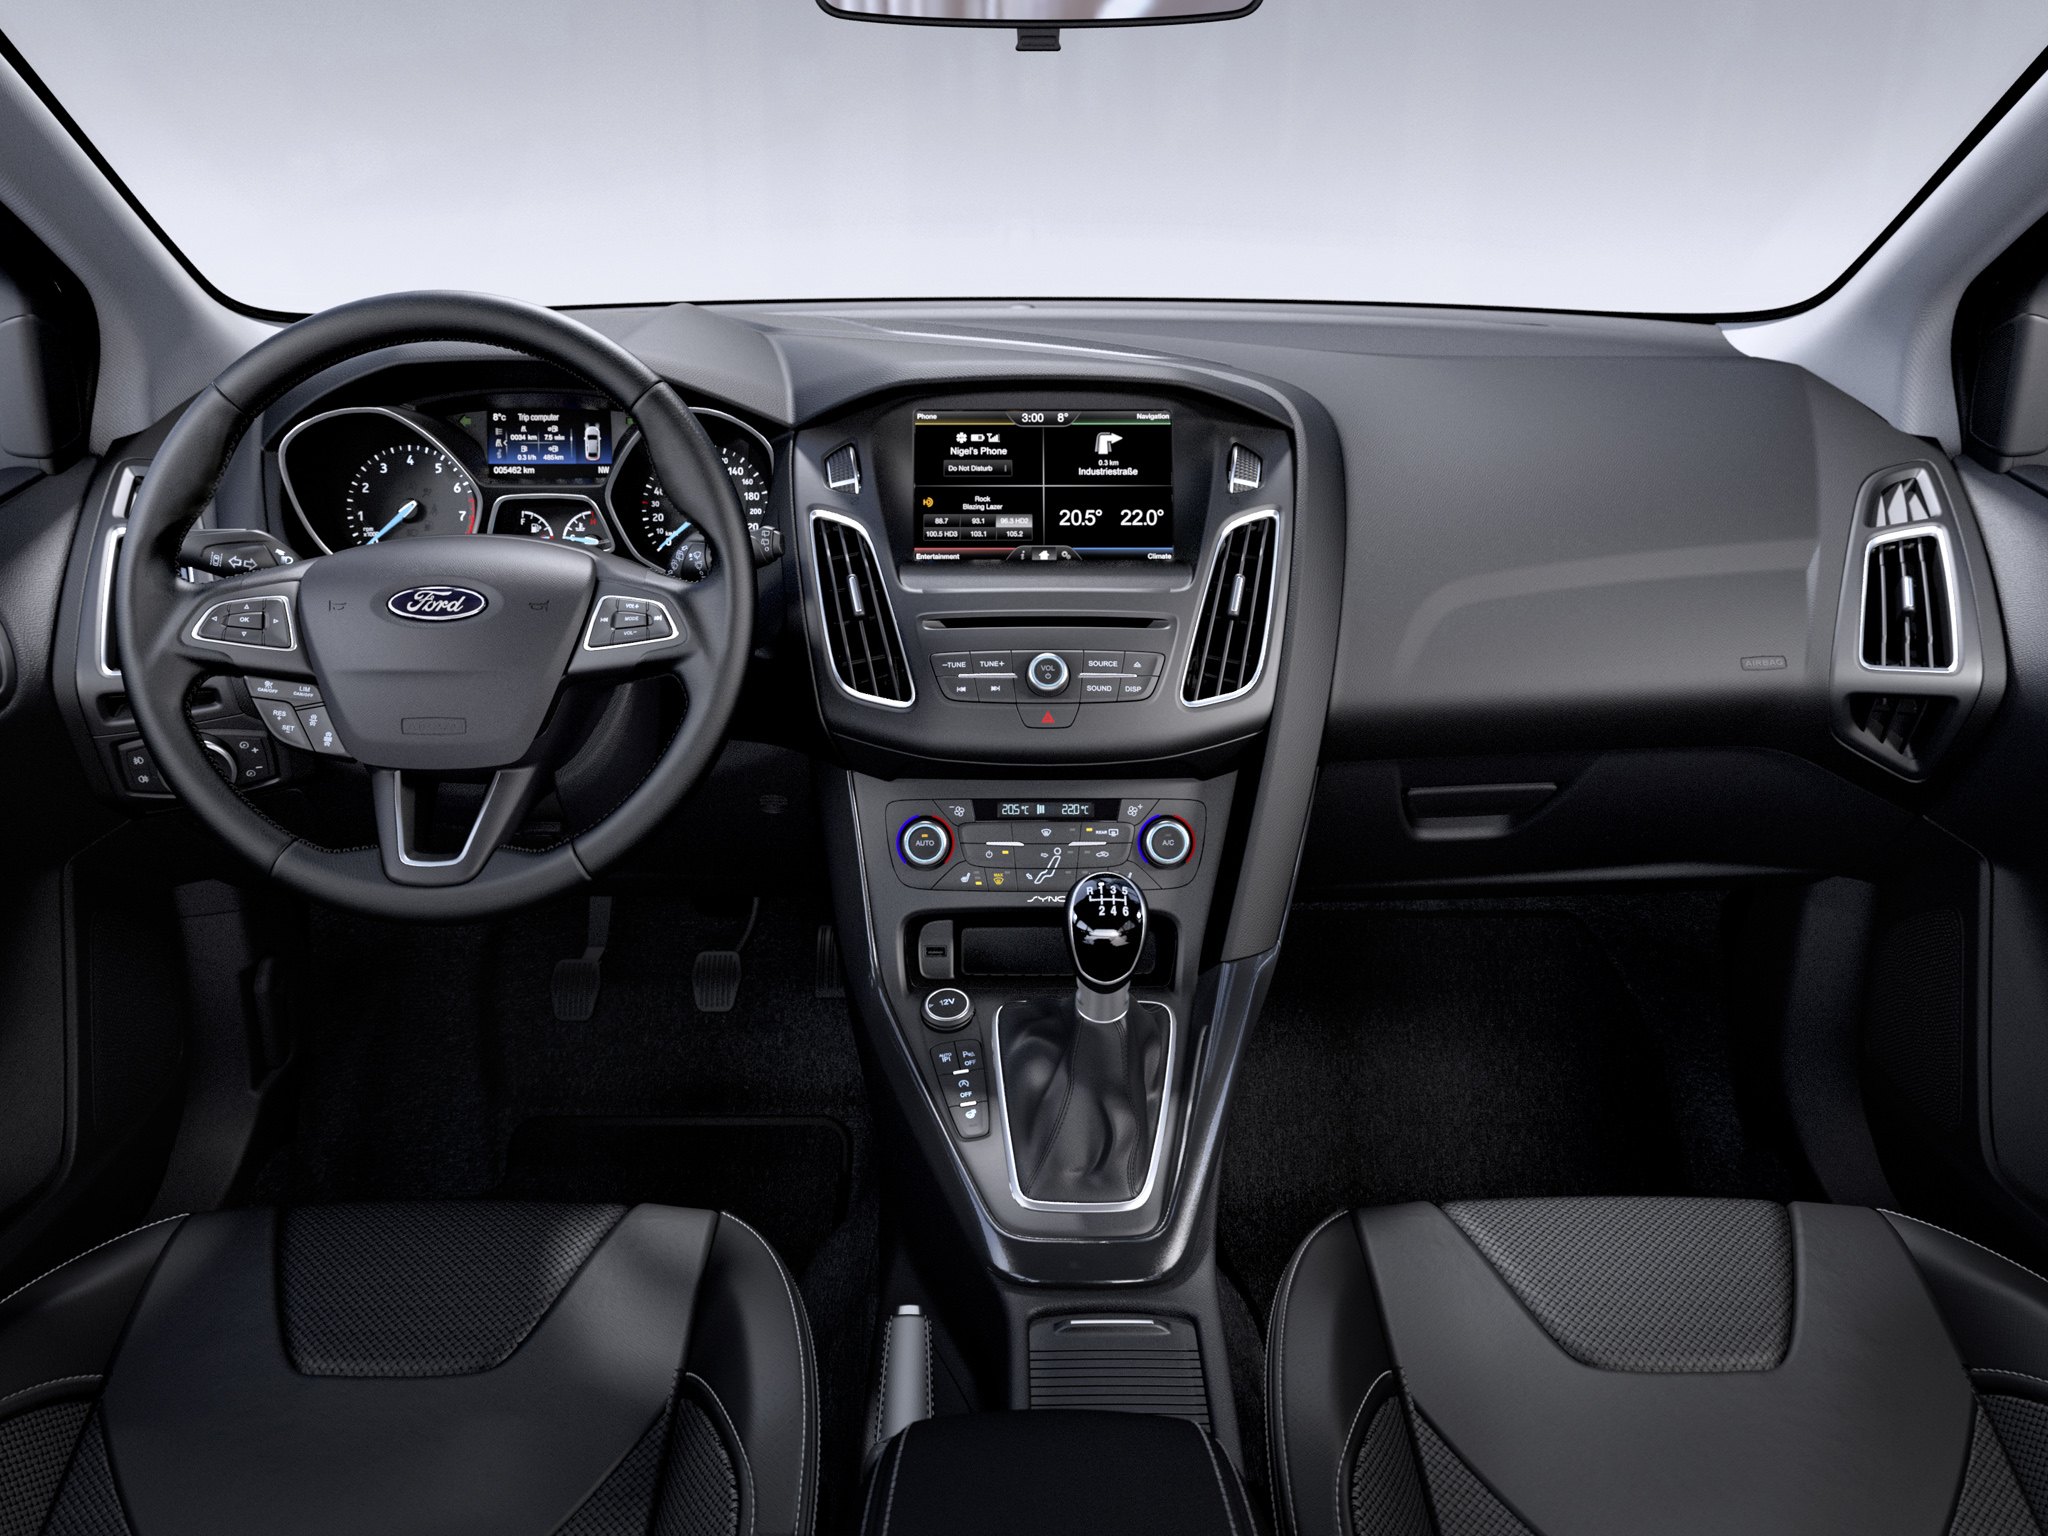 2014 Ford Focus Estate / Touring Leaked Photos Show New Interior and ...